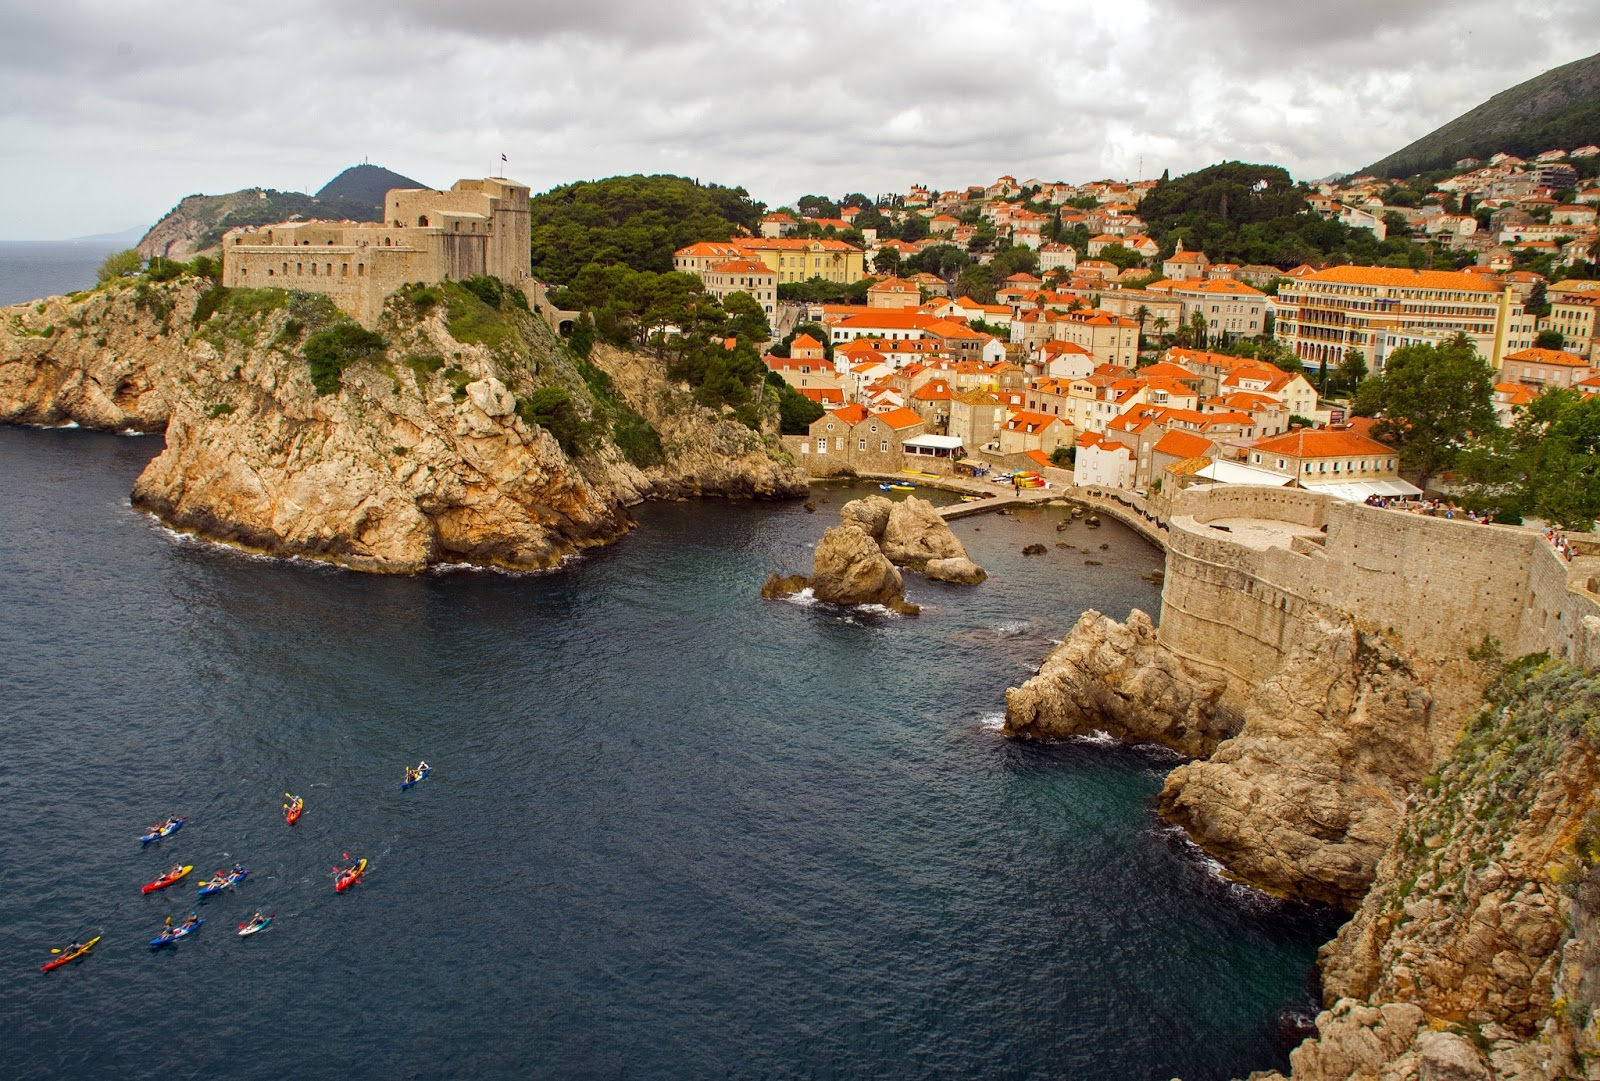 Our Dubrovnik Photo Diary